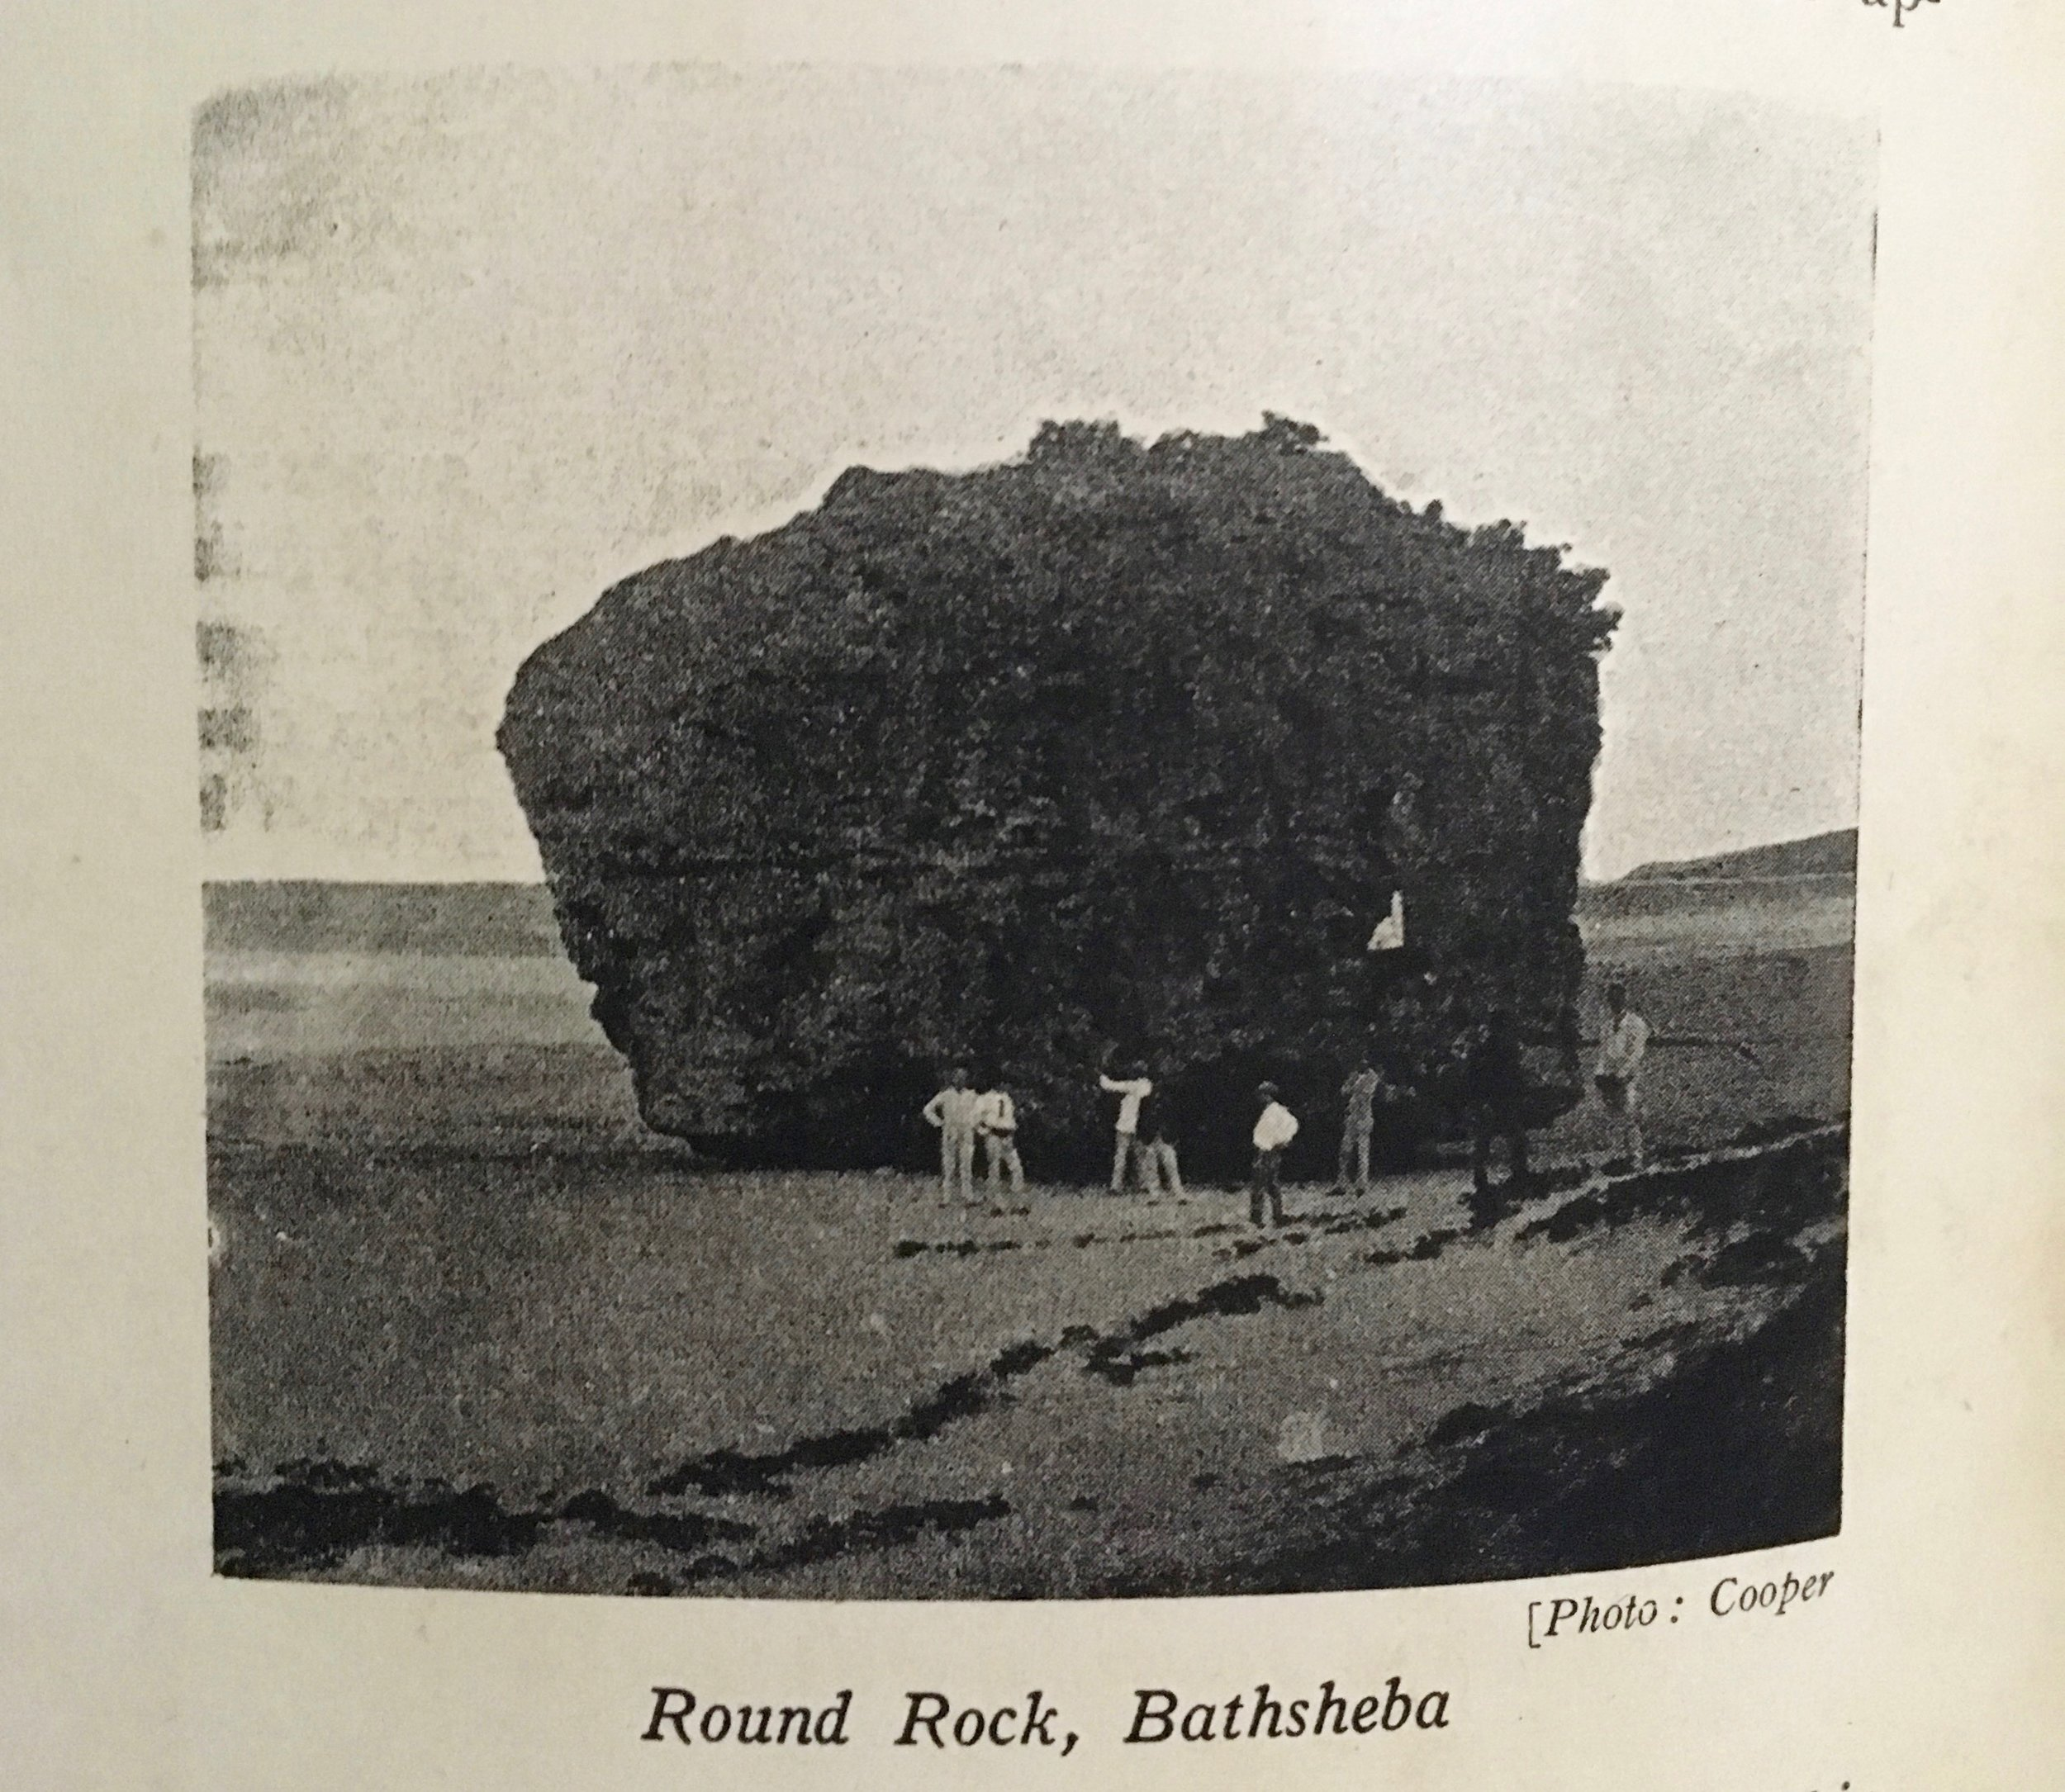 An image of Bathsheba rock in a historical book from Dr. Jefferson Clarke's collection.